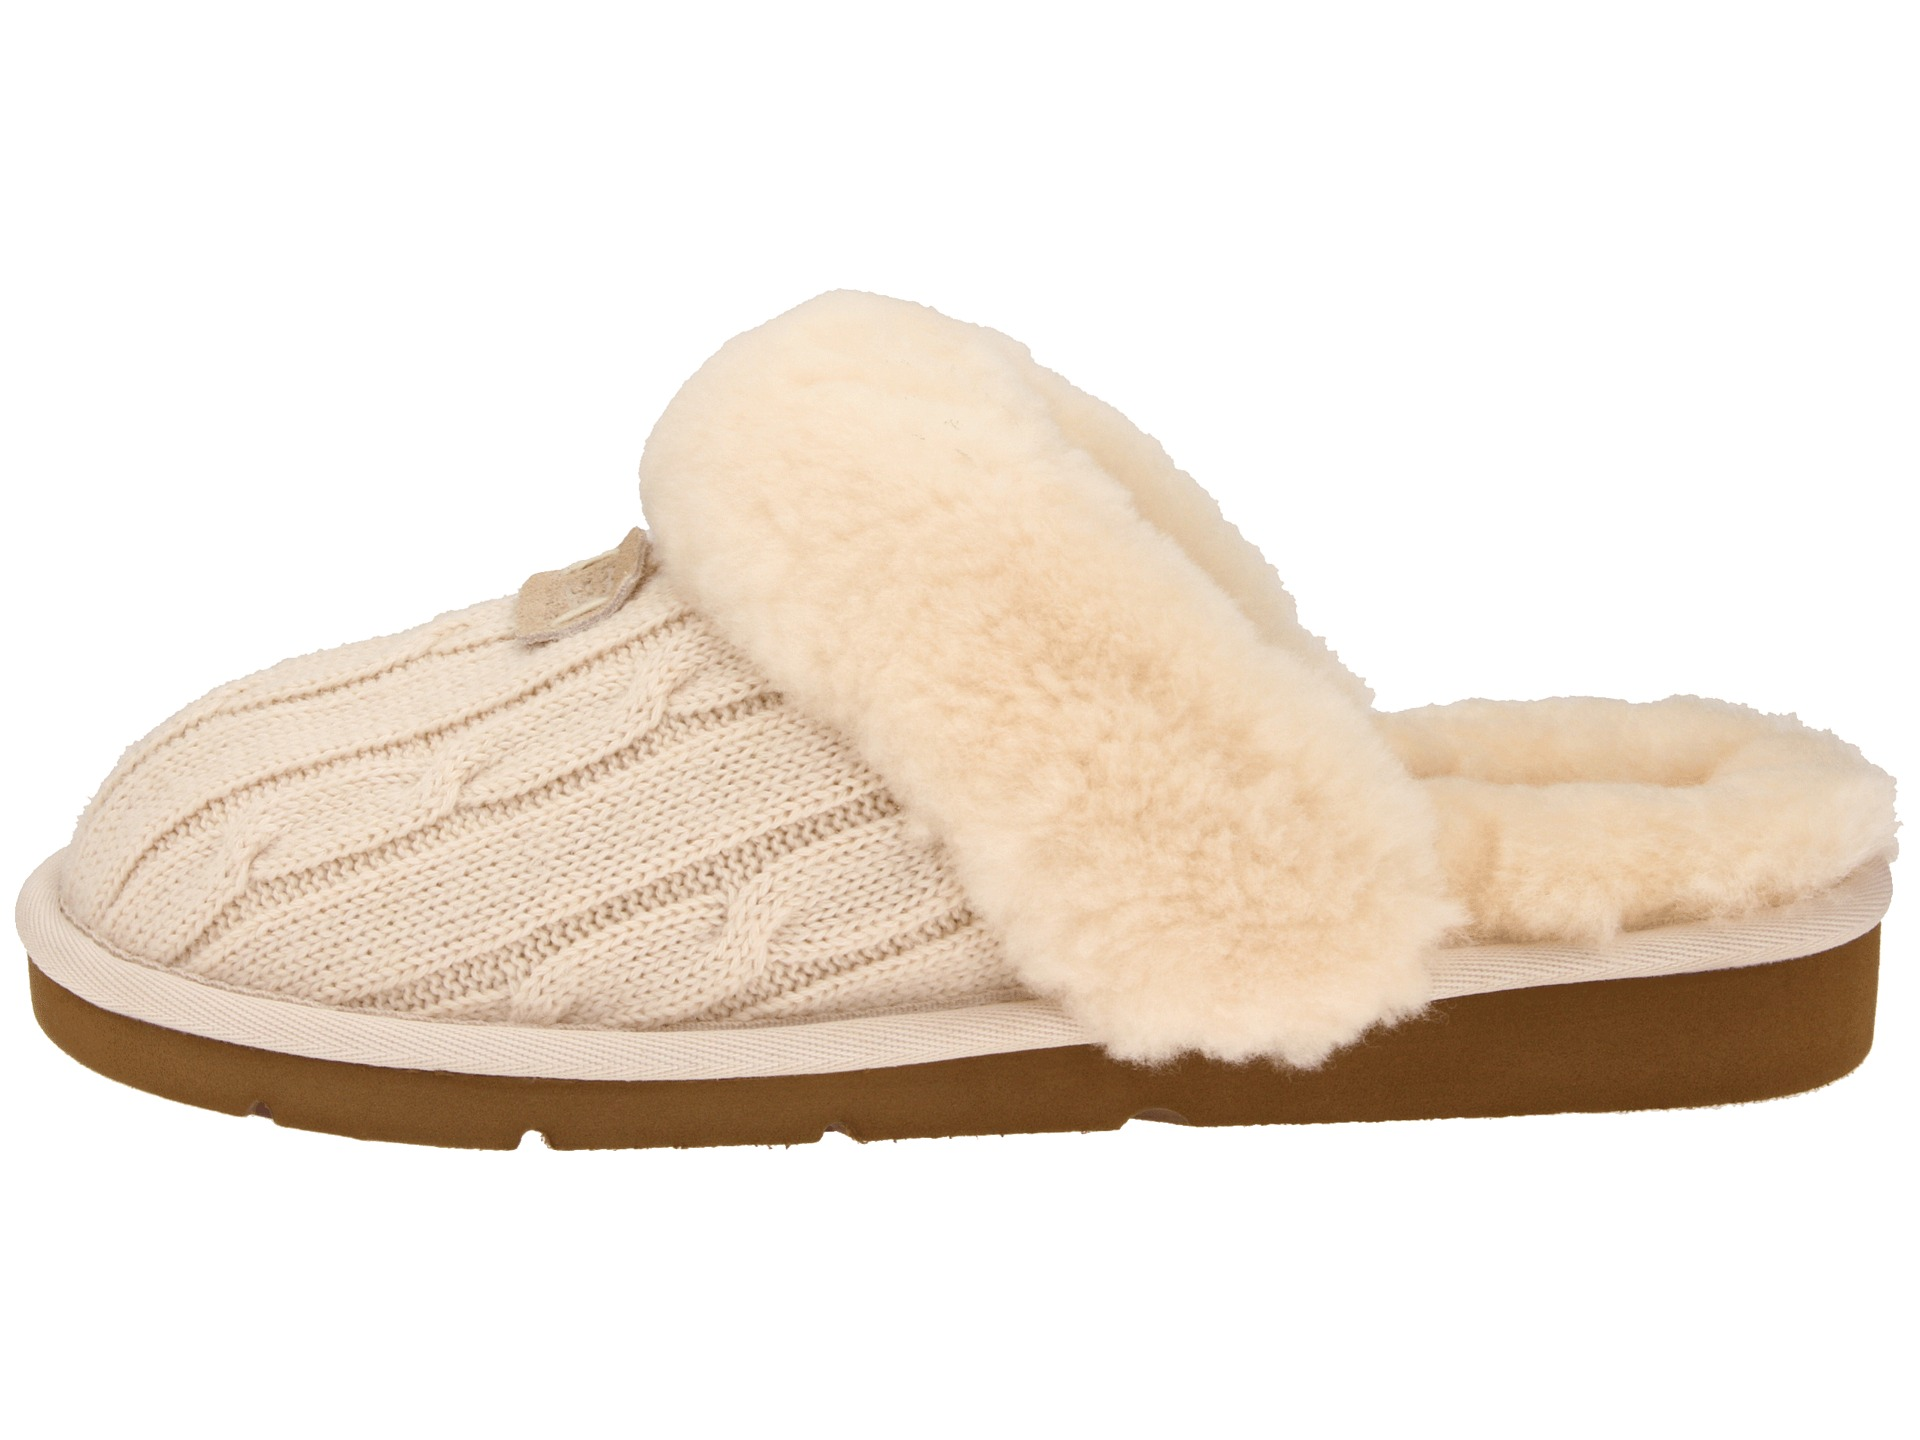 c2fc8726b87 Ugg Cozy Knit Slippers Size 5 - cheap watches mgc-gas.com